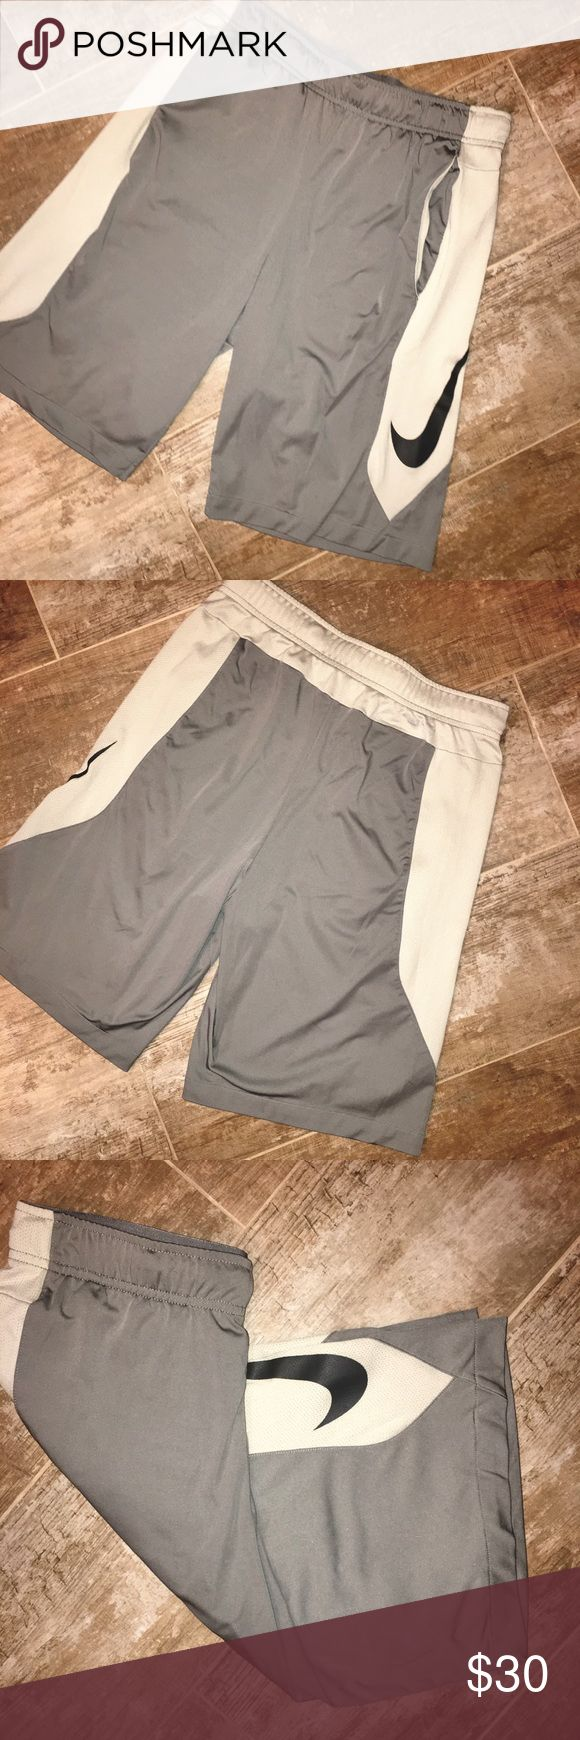 Nike Dri Fit Men's Gray Athletic Shorts Size S Nike Dri Fit Men's Gray Athletic Shorts Size S - *Worn Couple Of Times* - Front Pockets Nike Shorts Athletic